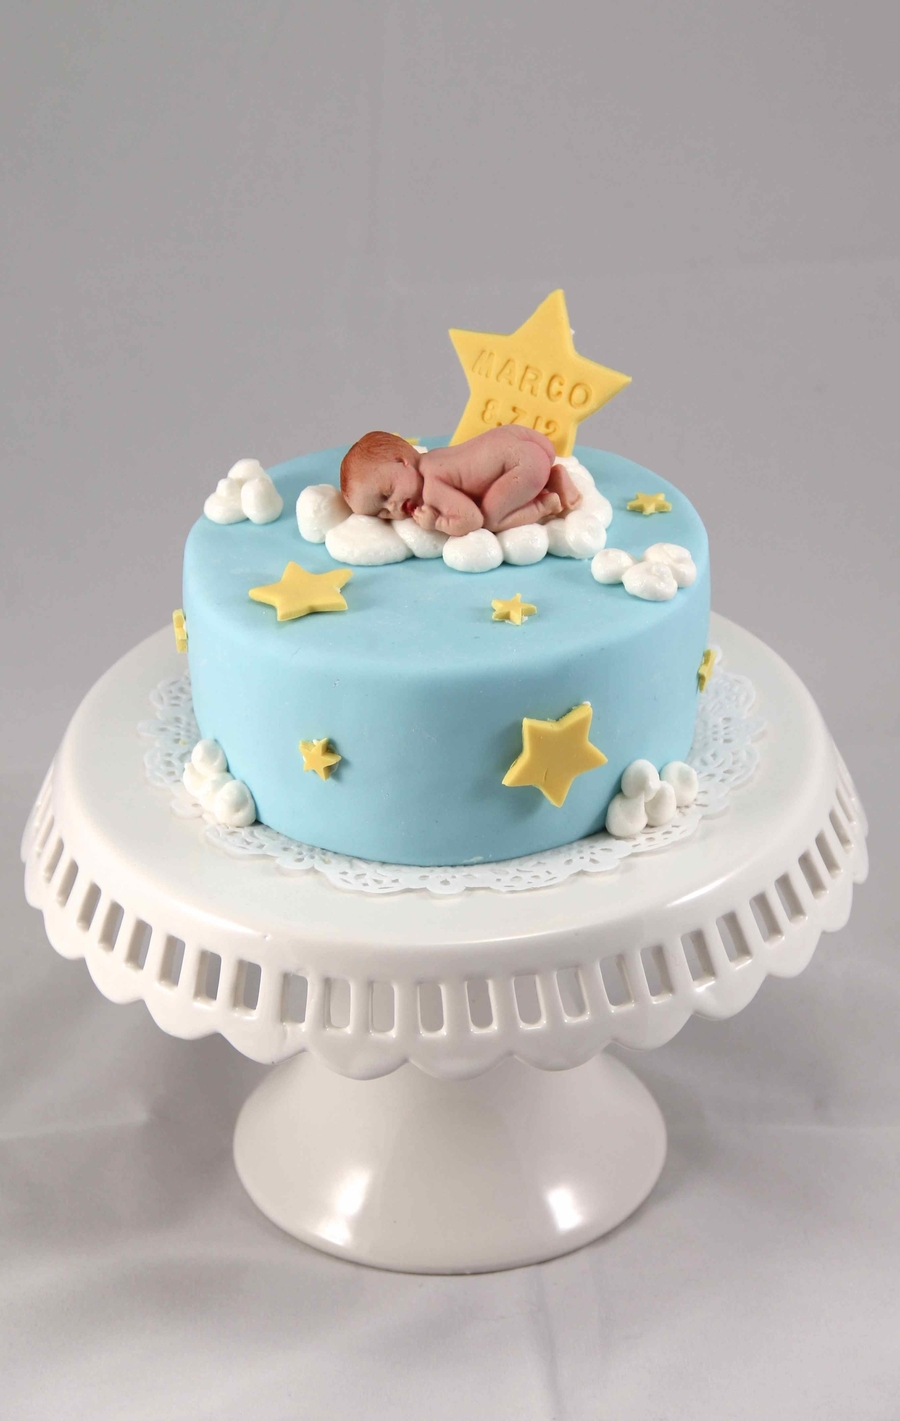 Baby On Cloud For One Month Celebration on Cake Central